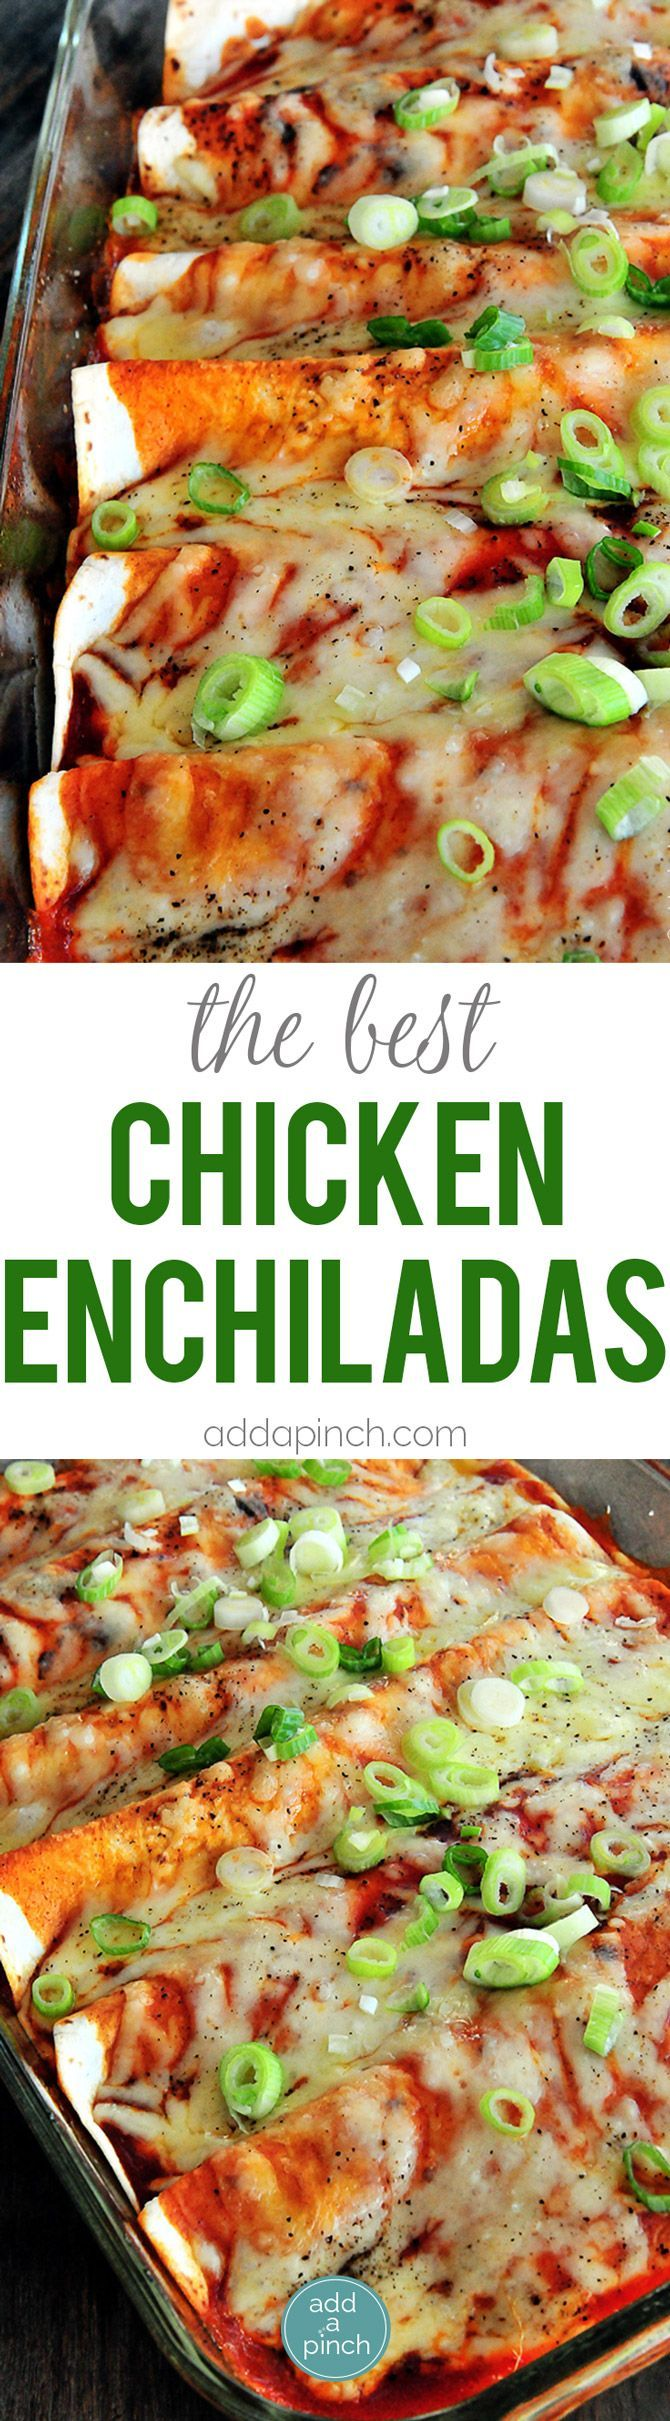 Chicken Enchiladas Recipe - Chicken Enchiladas make a perfect weeknight meal! Seriously the BEST chicken enchilada recipe and one the whole family will love! It will become a favorite! // addapinch.com